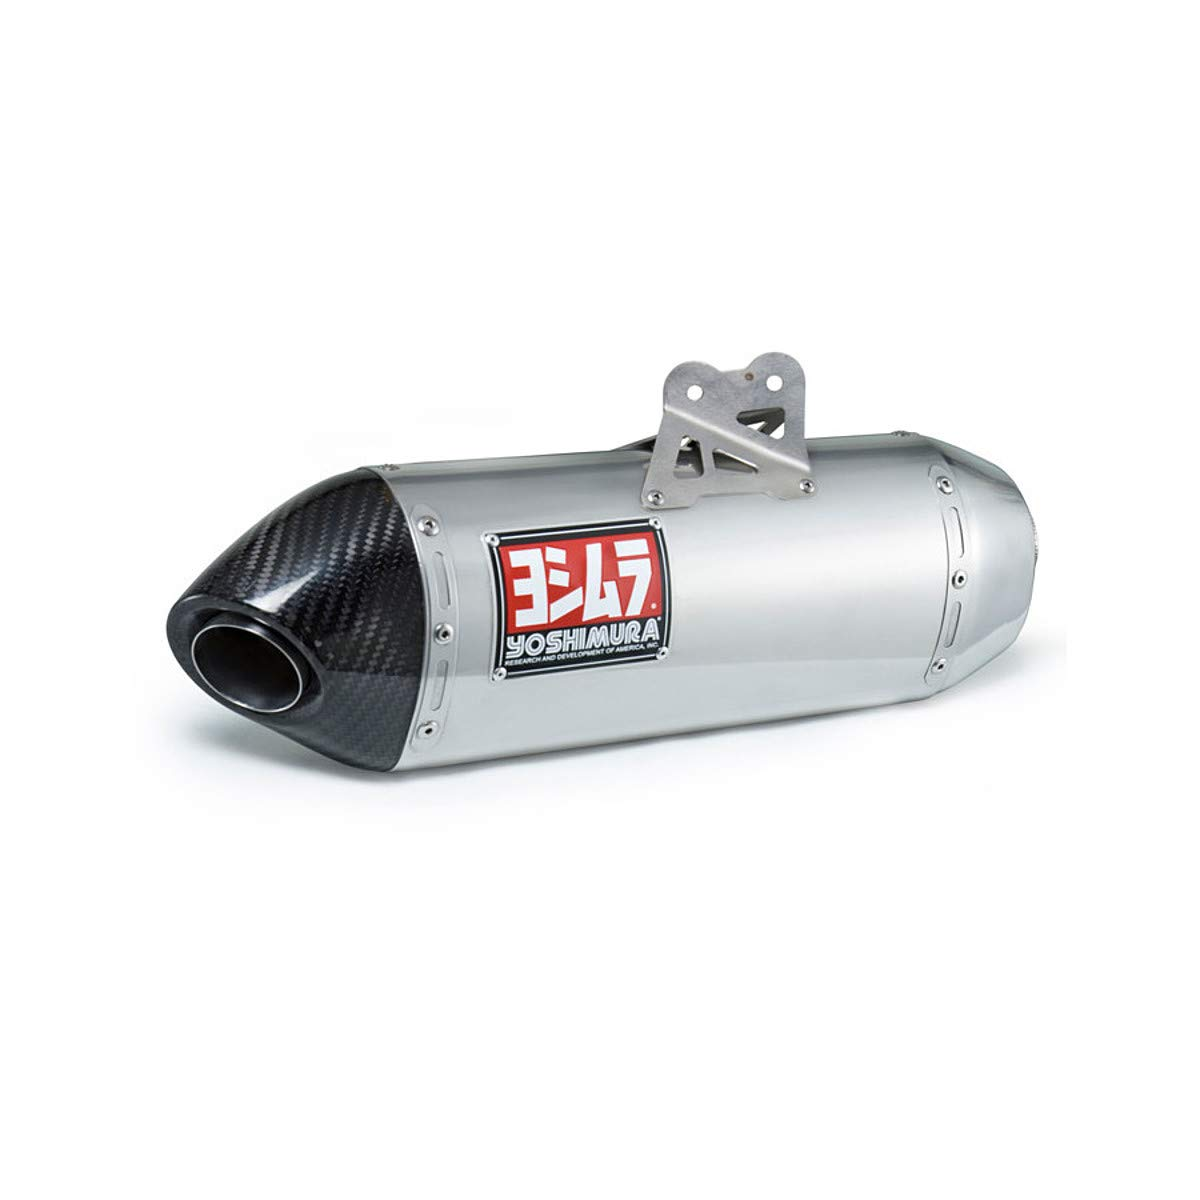 Yoshimura 196549 RS-4 Full Exhaust System Stainless Sleeve with Carbon End Cap